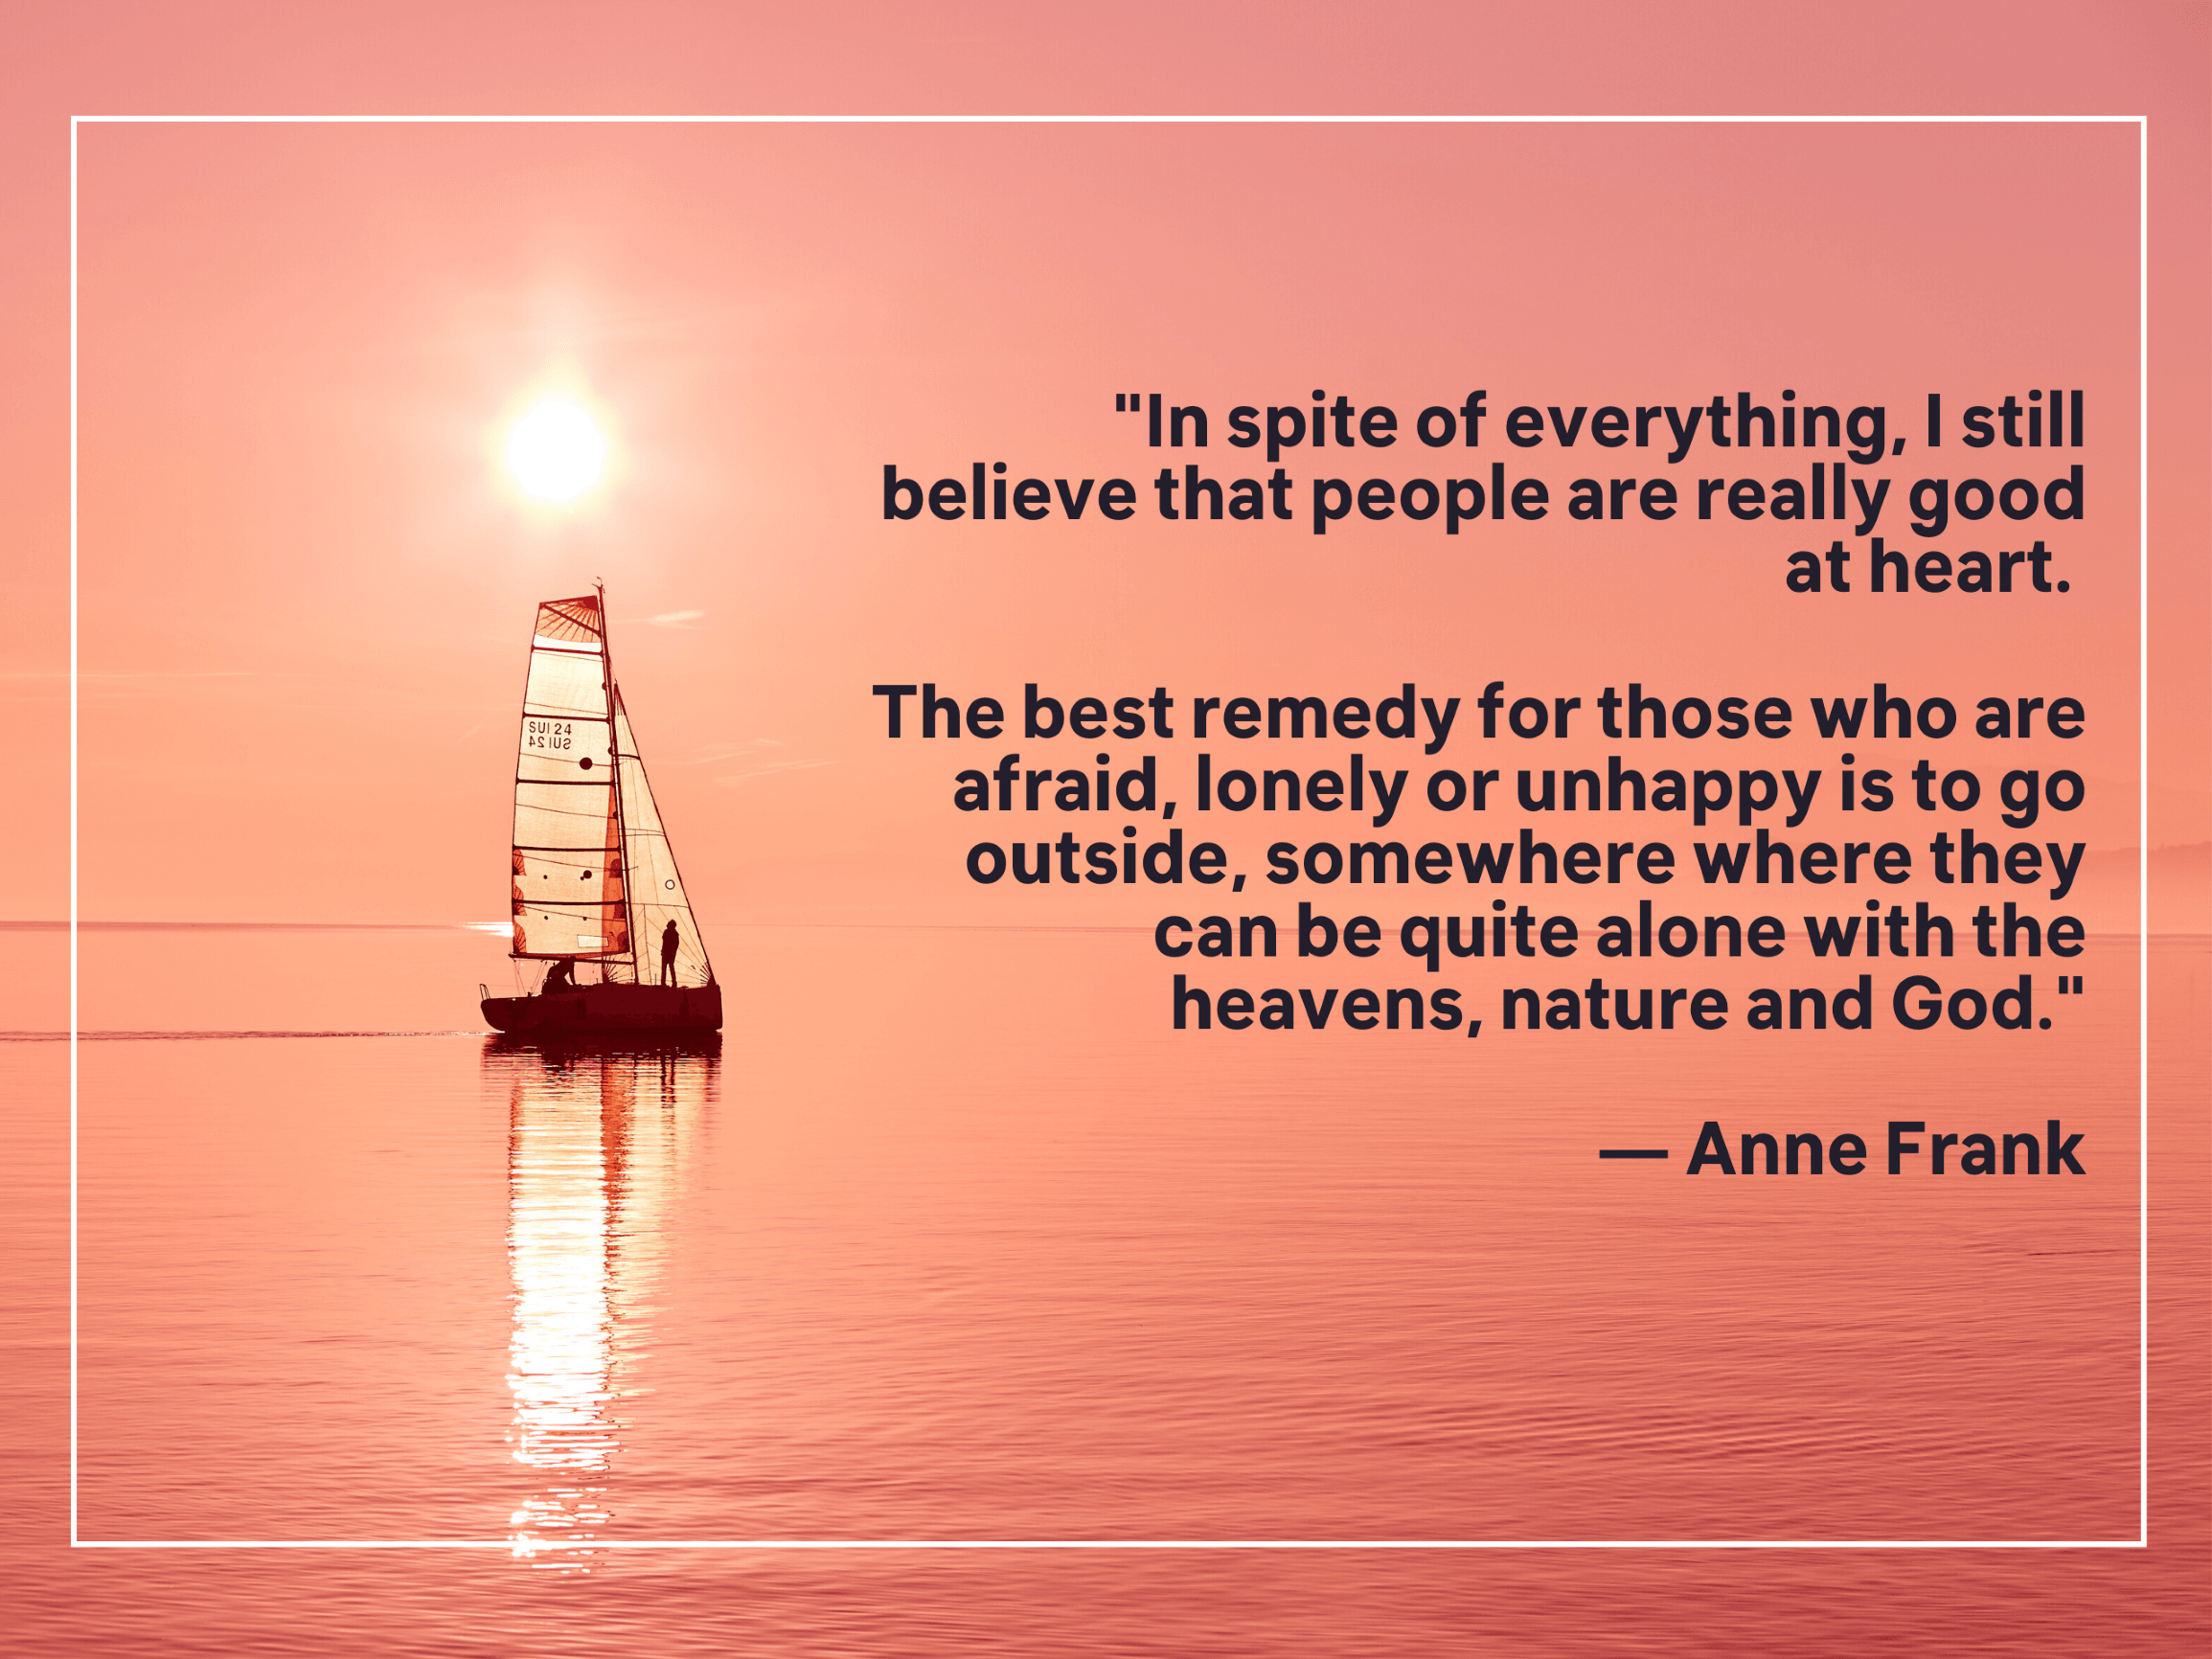 Quote about nature and God